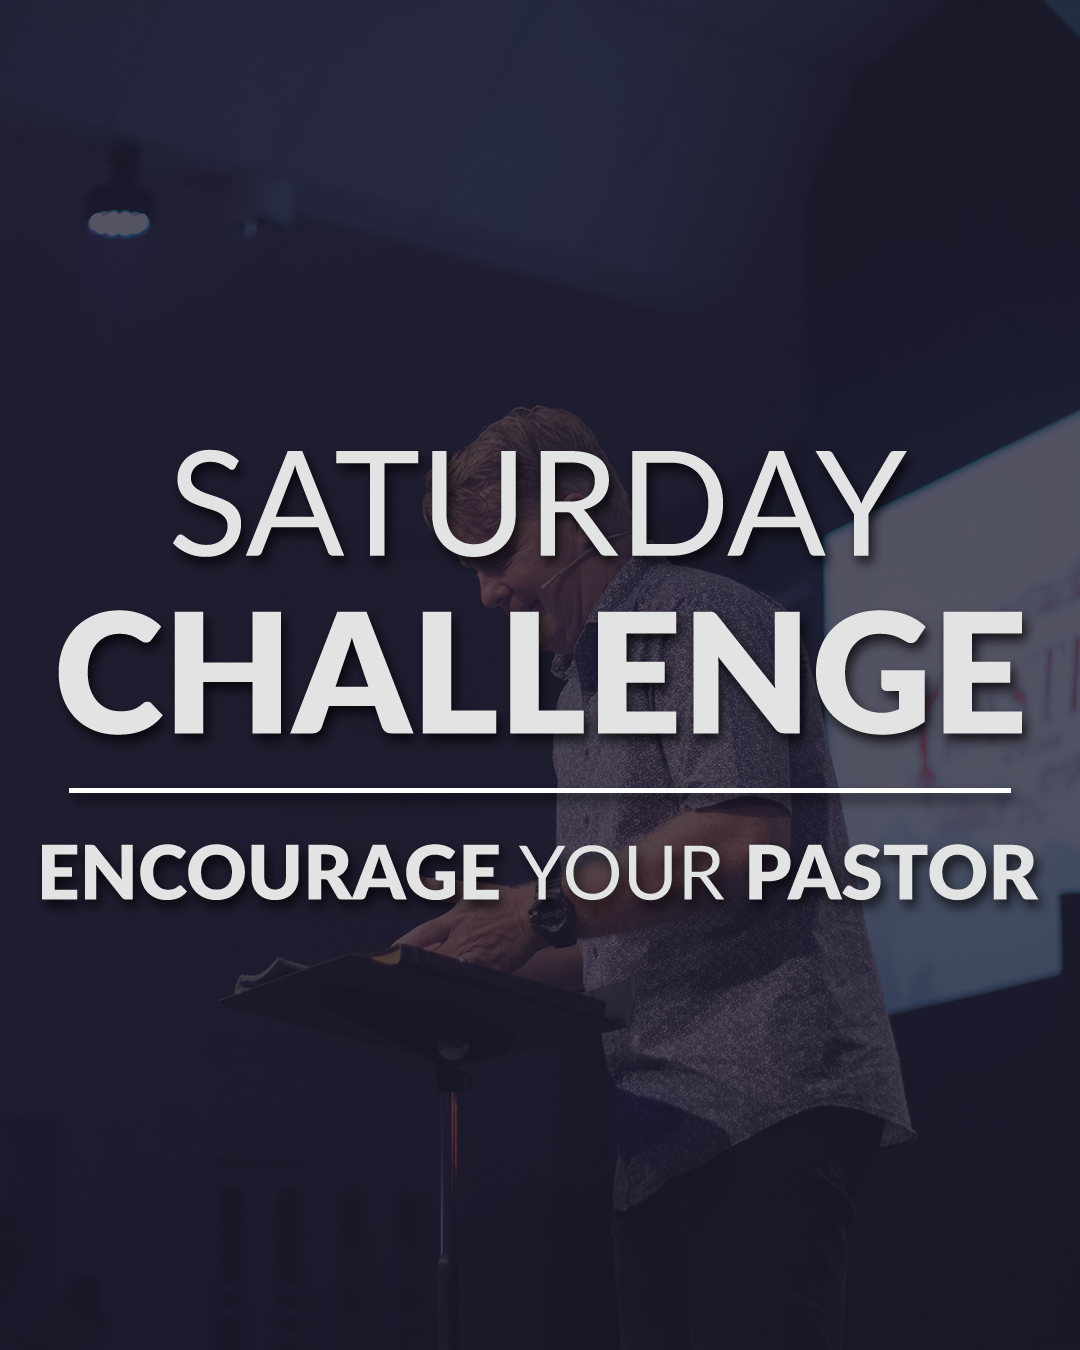 Saturday Challenge - Encourage Your Pastor